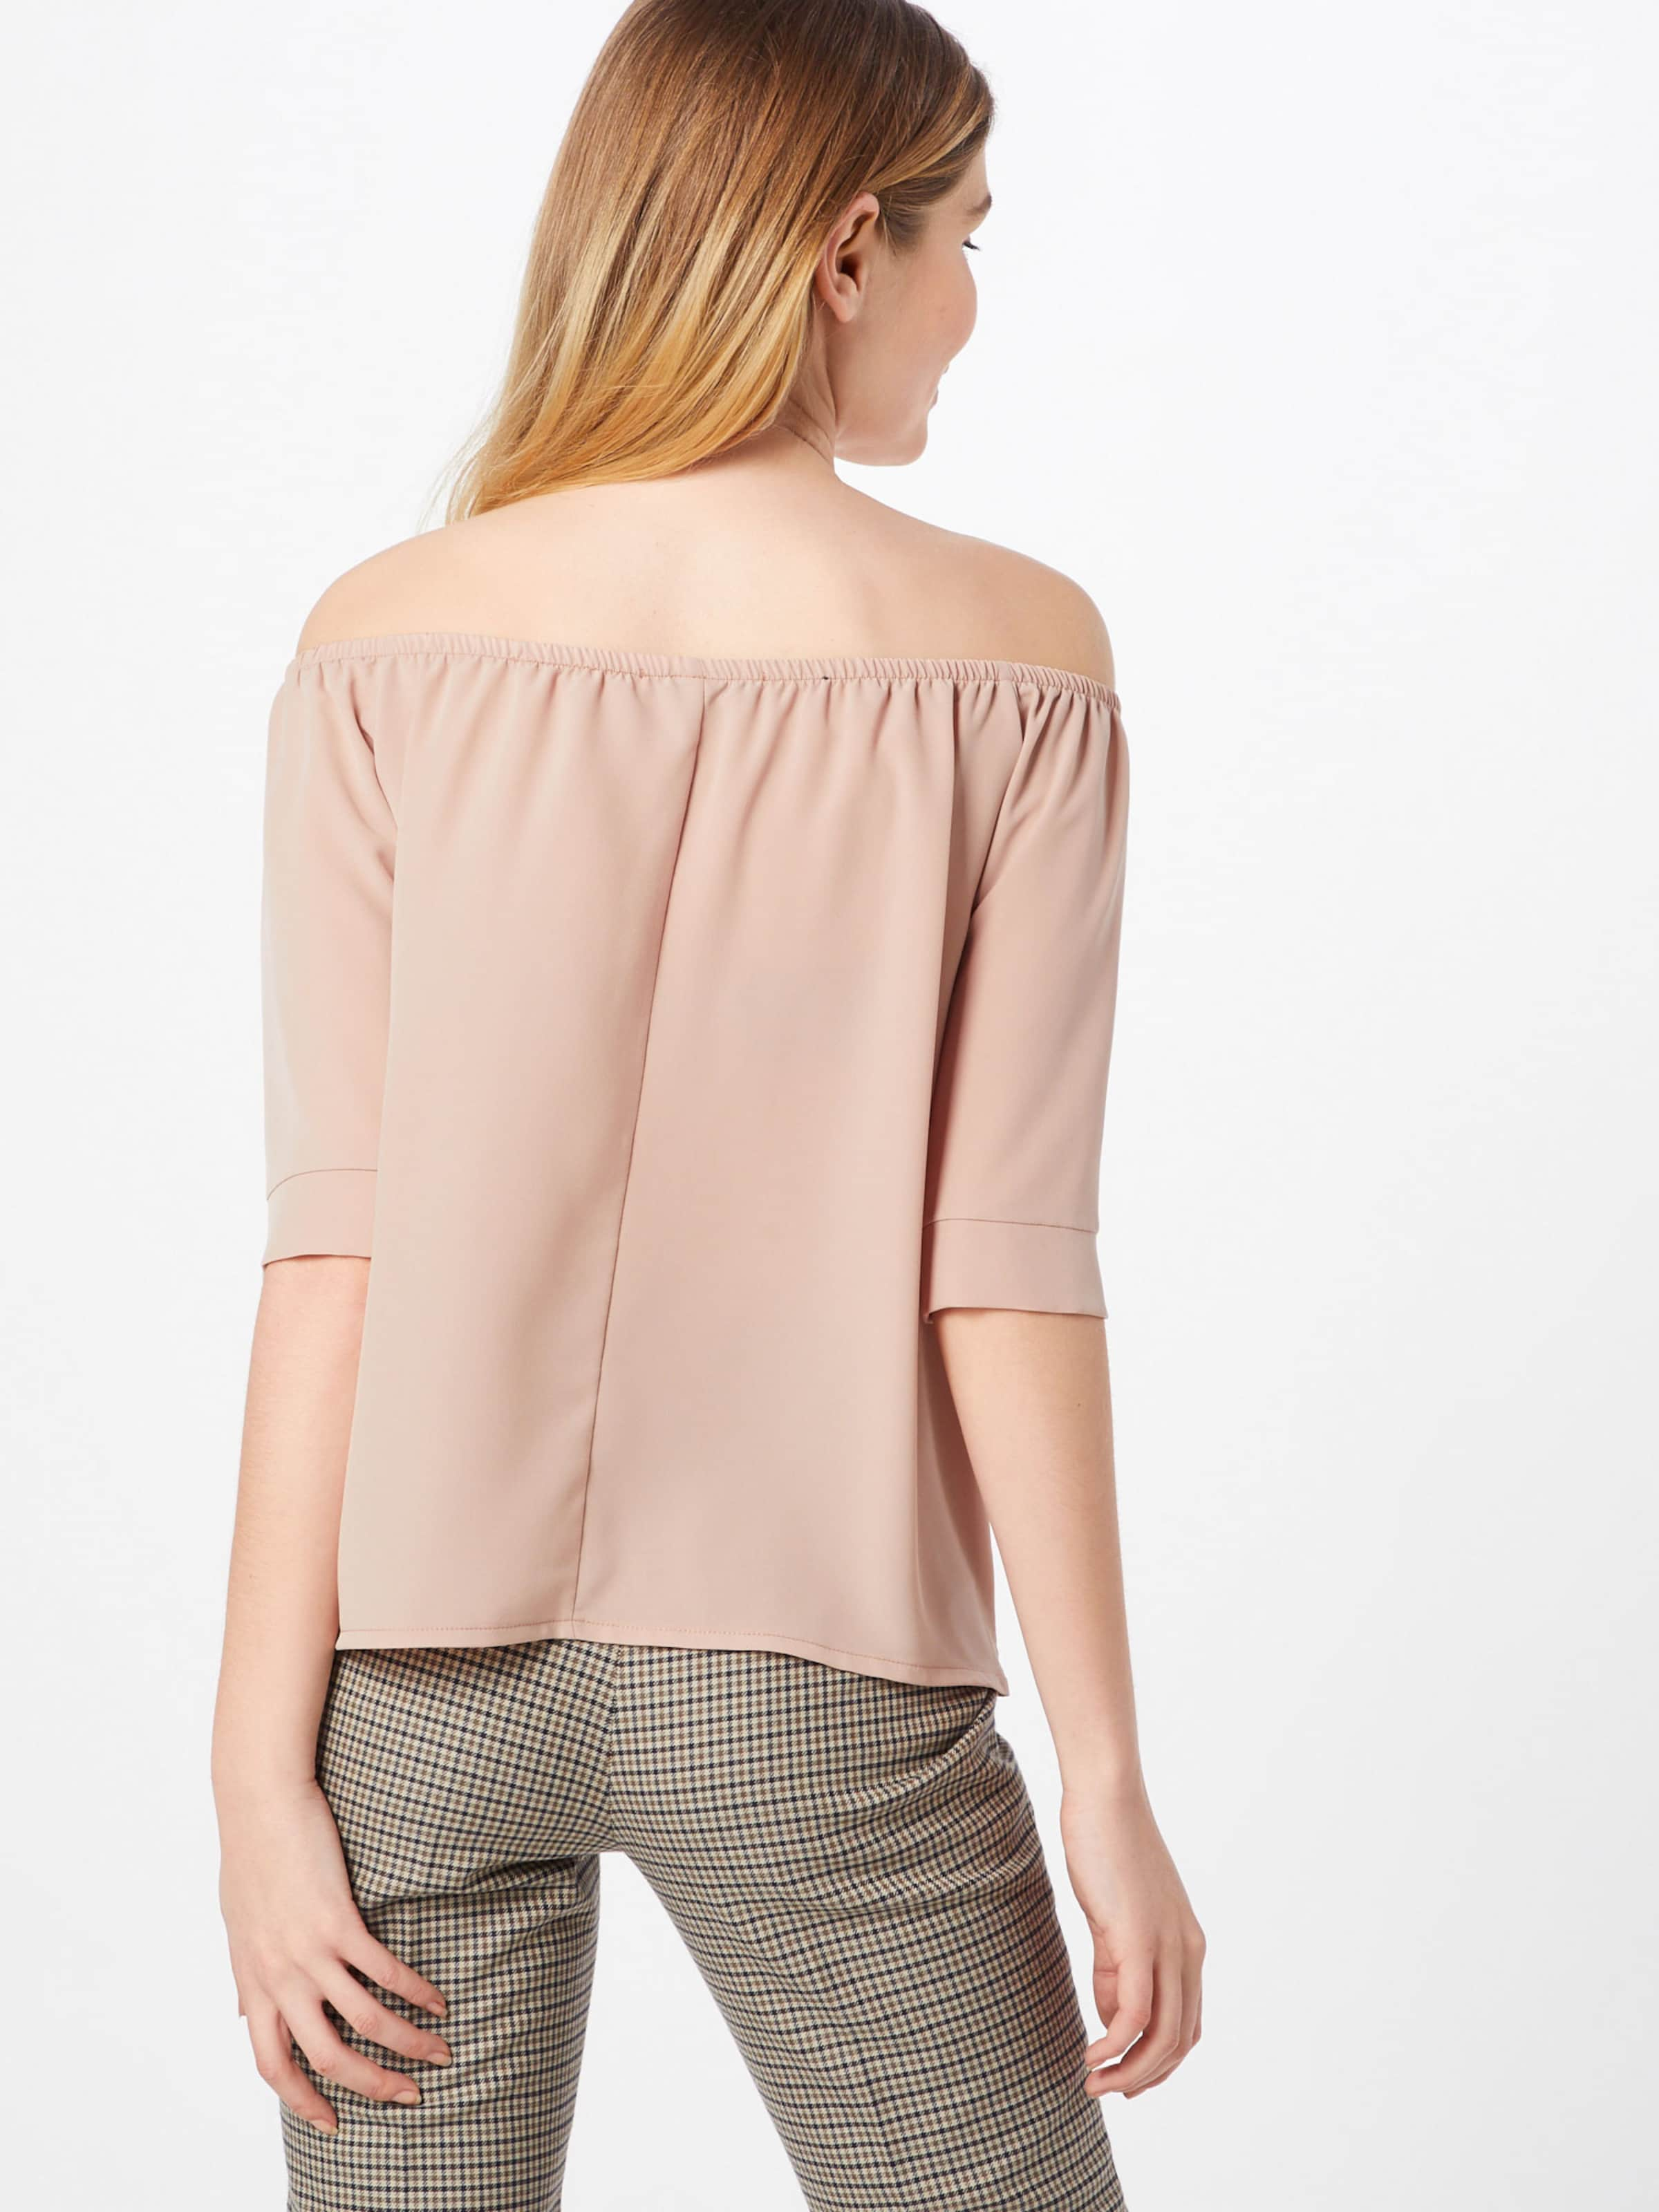 About 'aurelia' Rosa In Bluse You 3cTlFKJ1